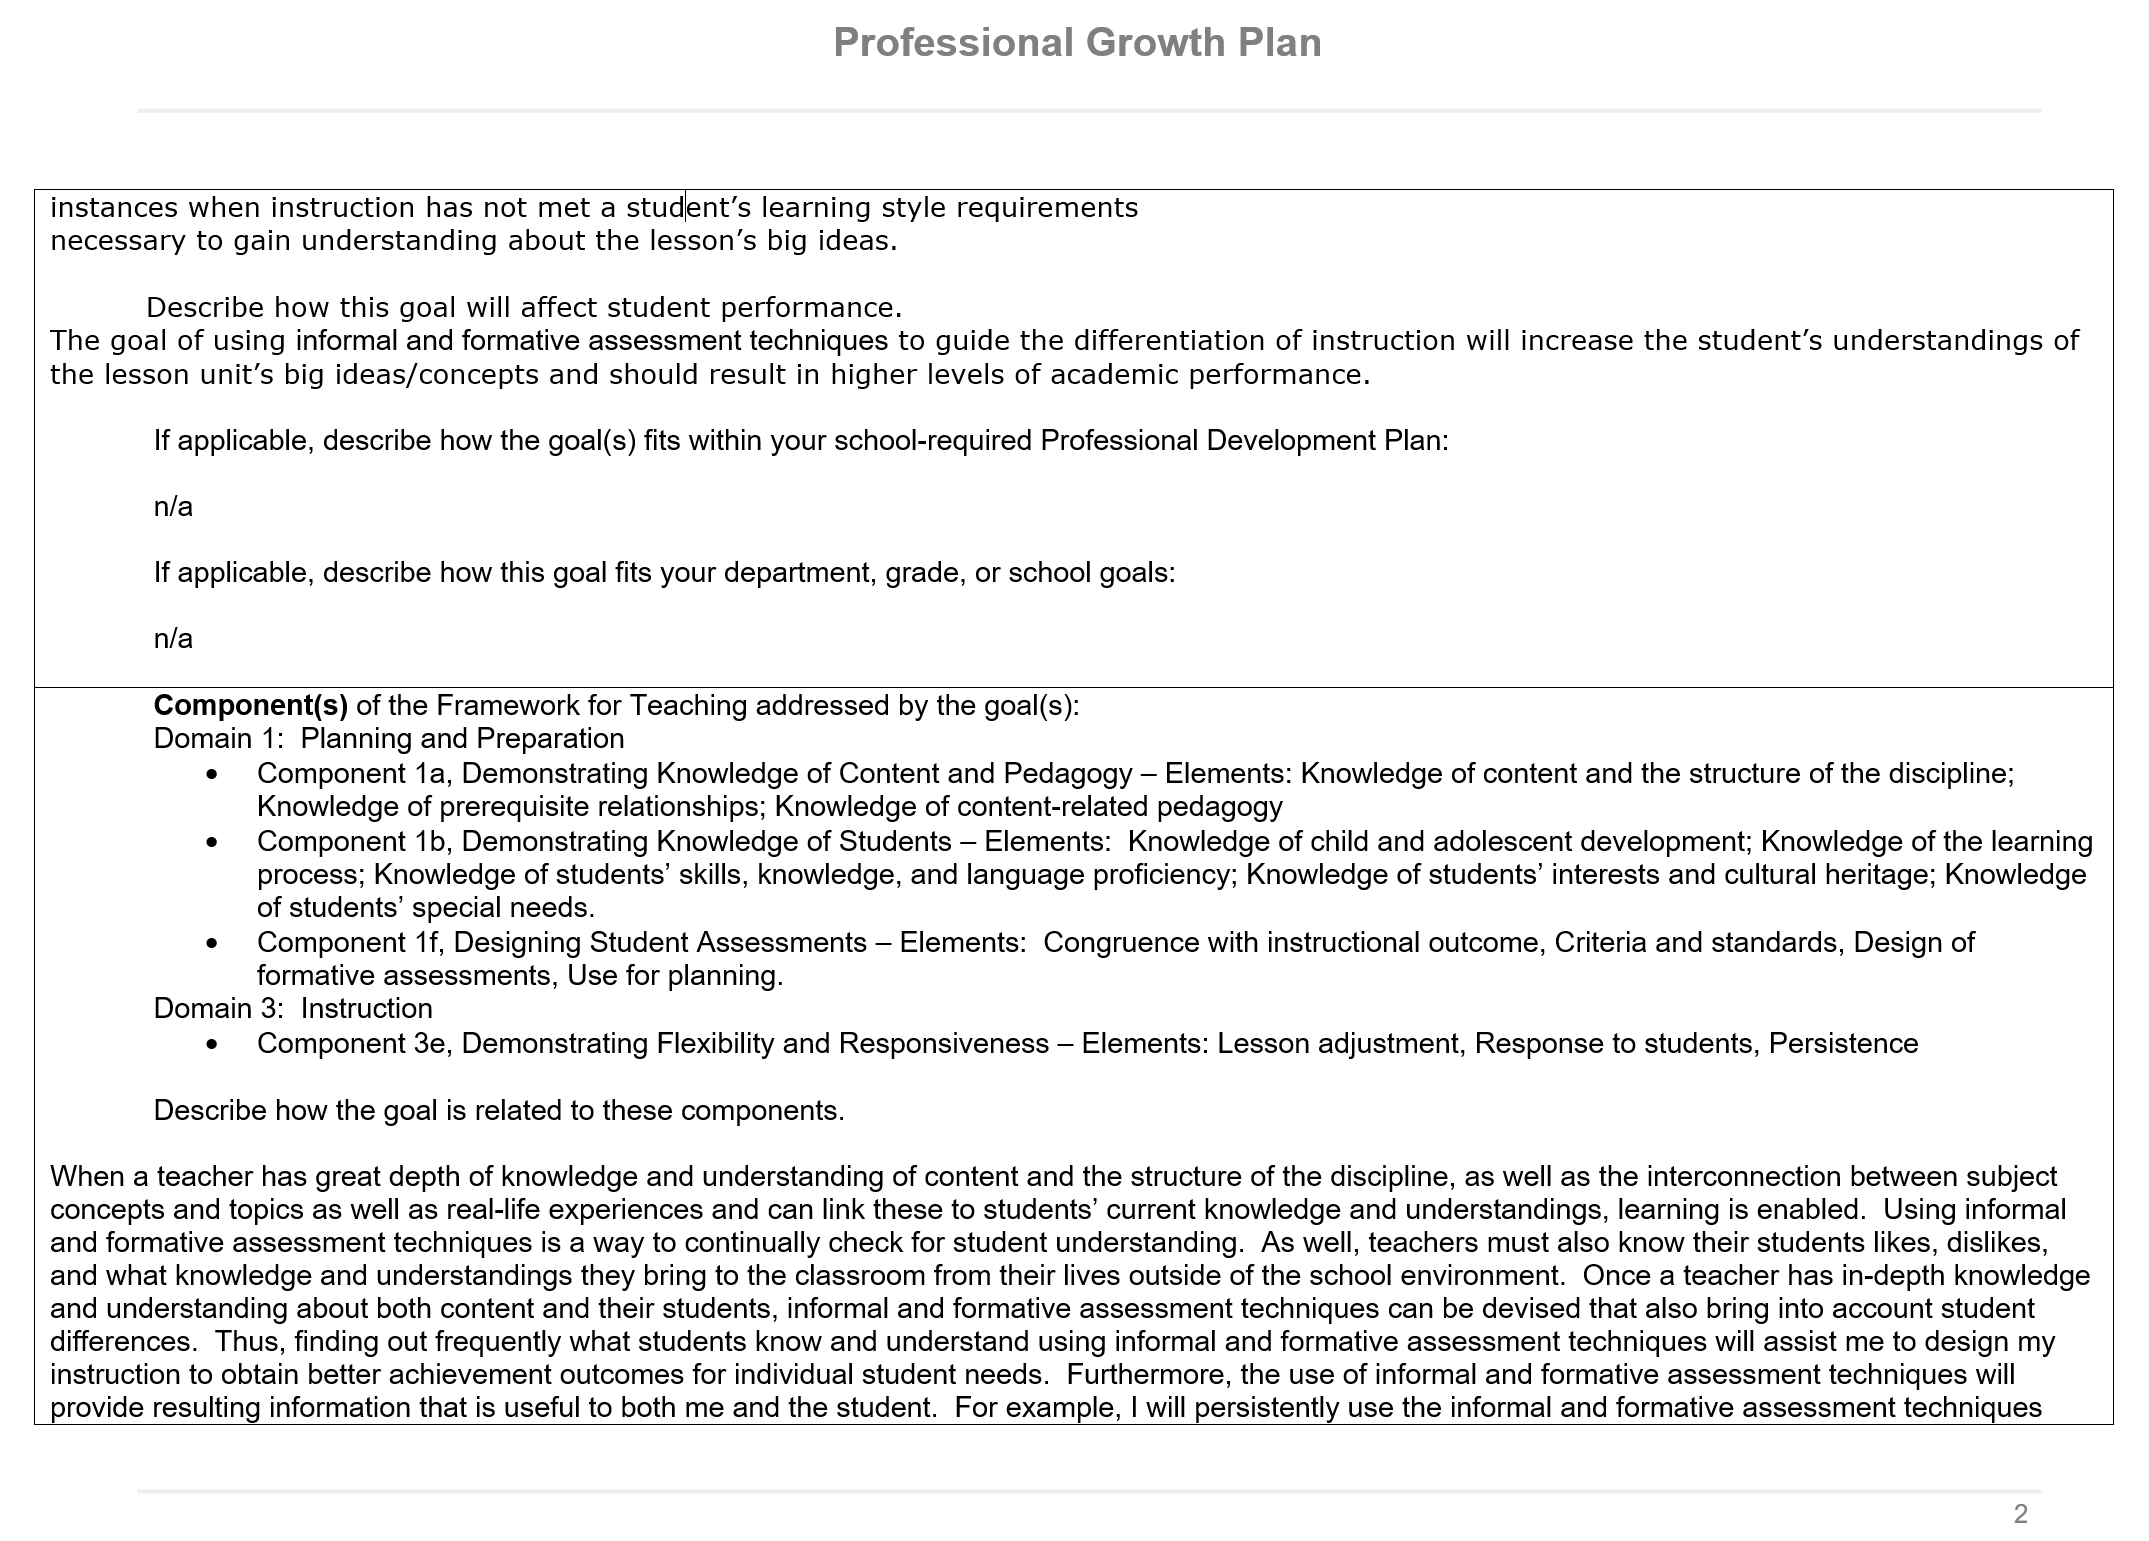 professional growth plan p 2 of 7